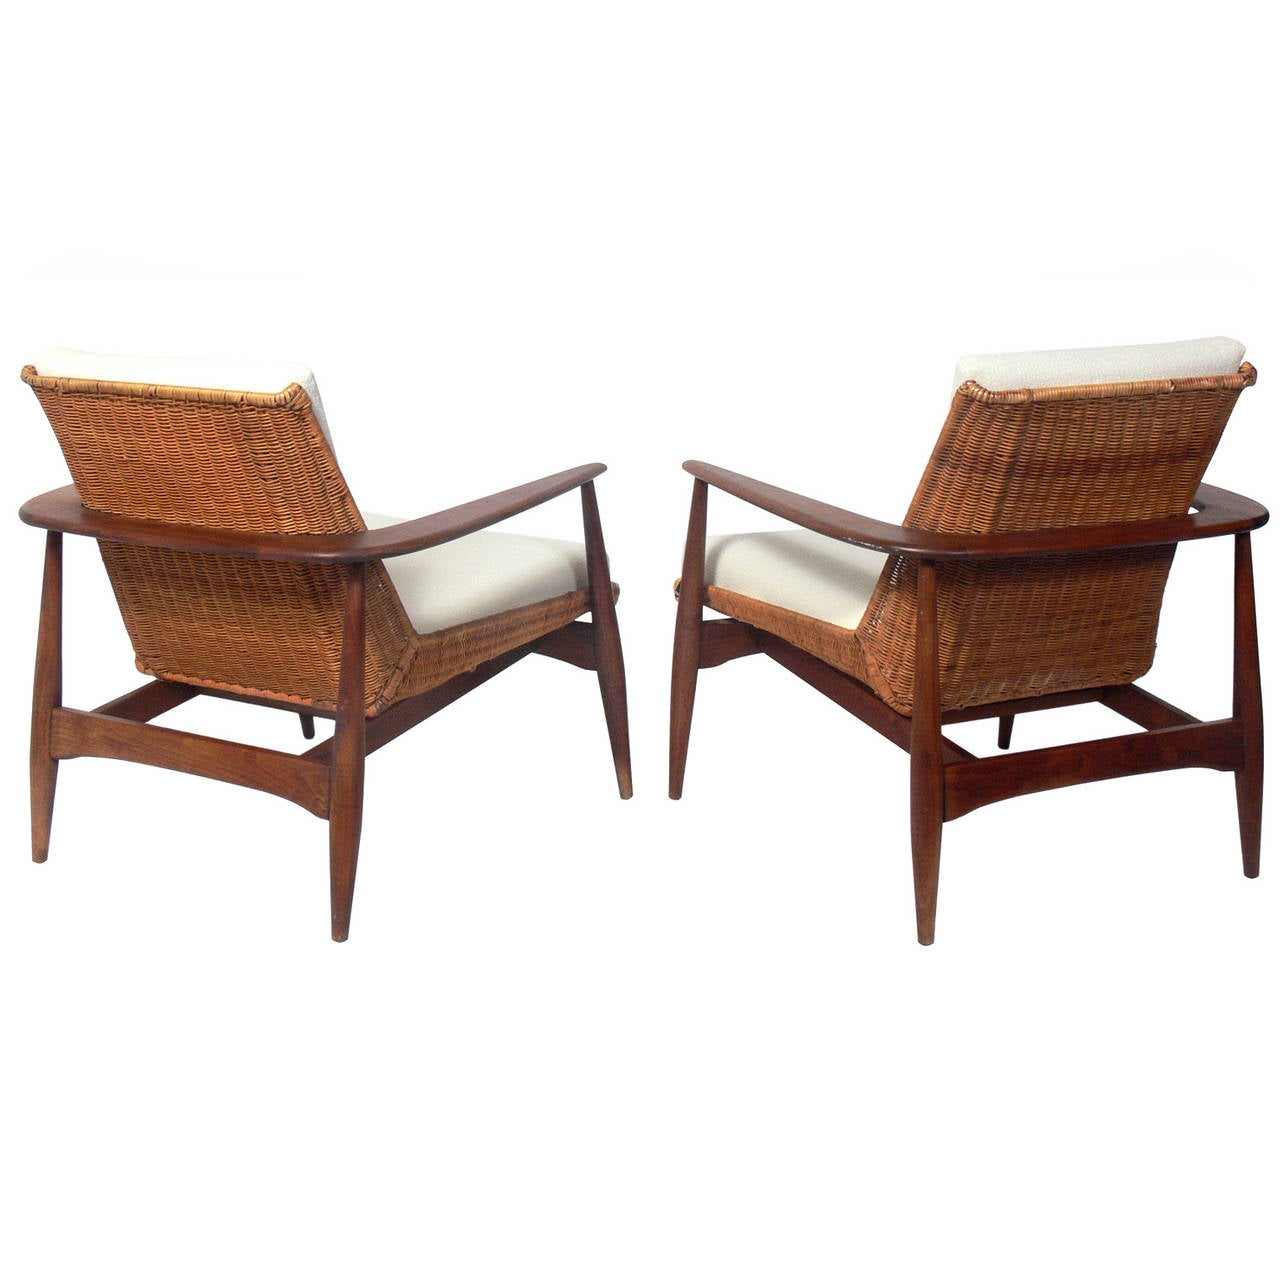 Pair of danish modern lounge chairs by lawrence peabody at for Stylish lounge chairs